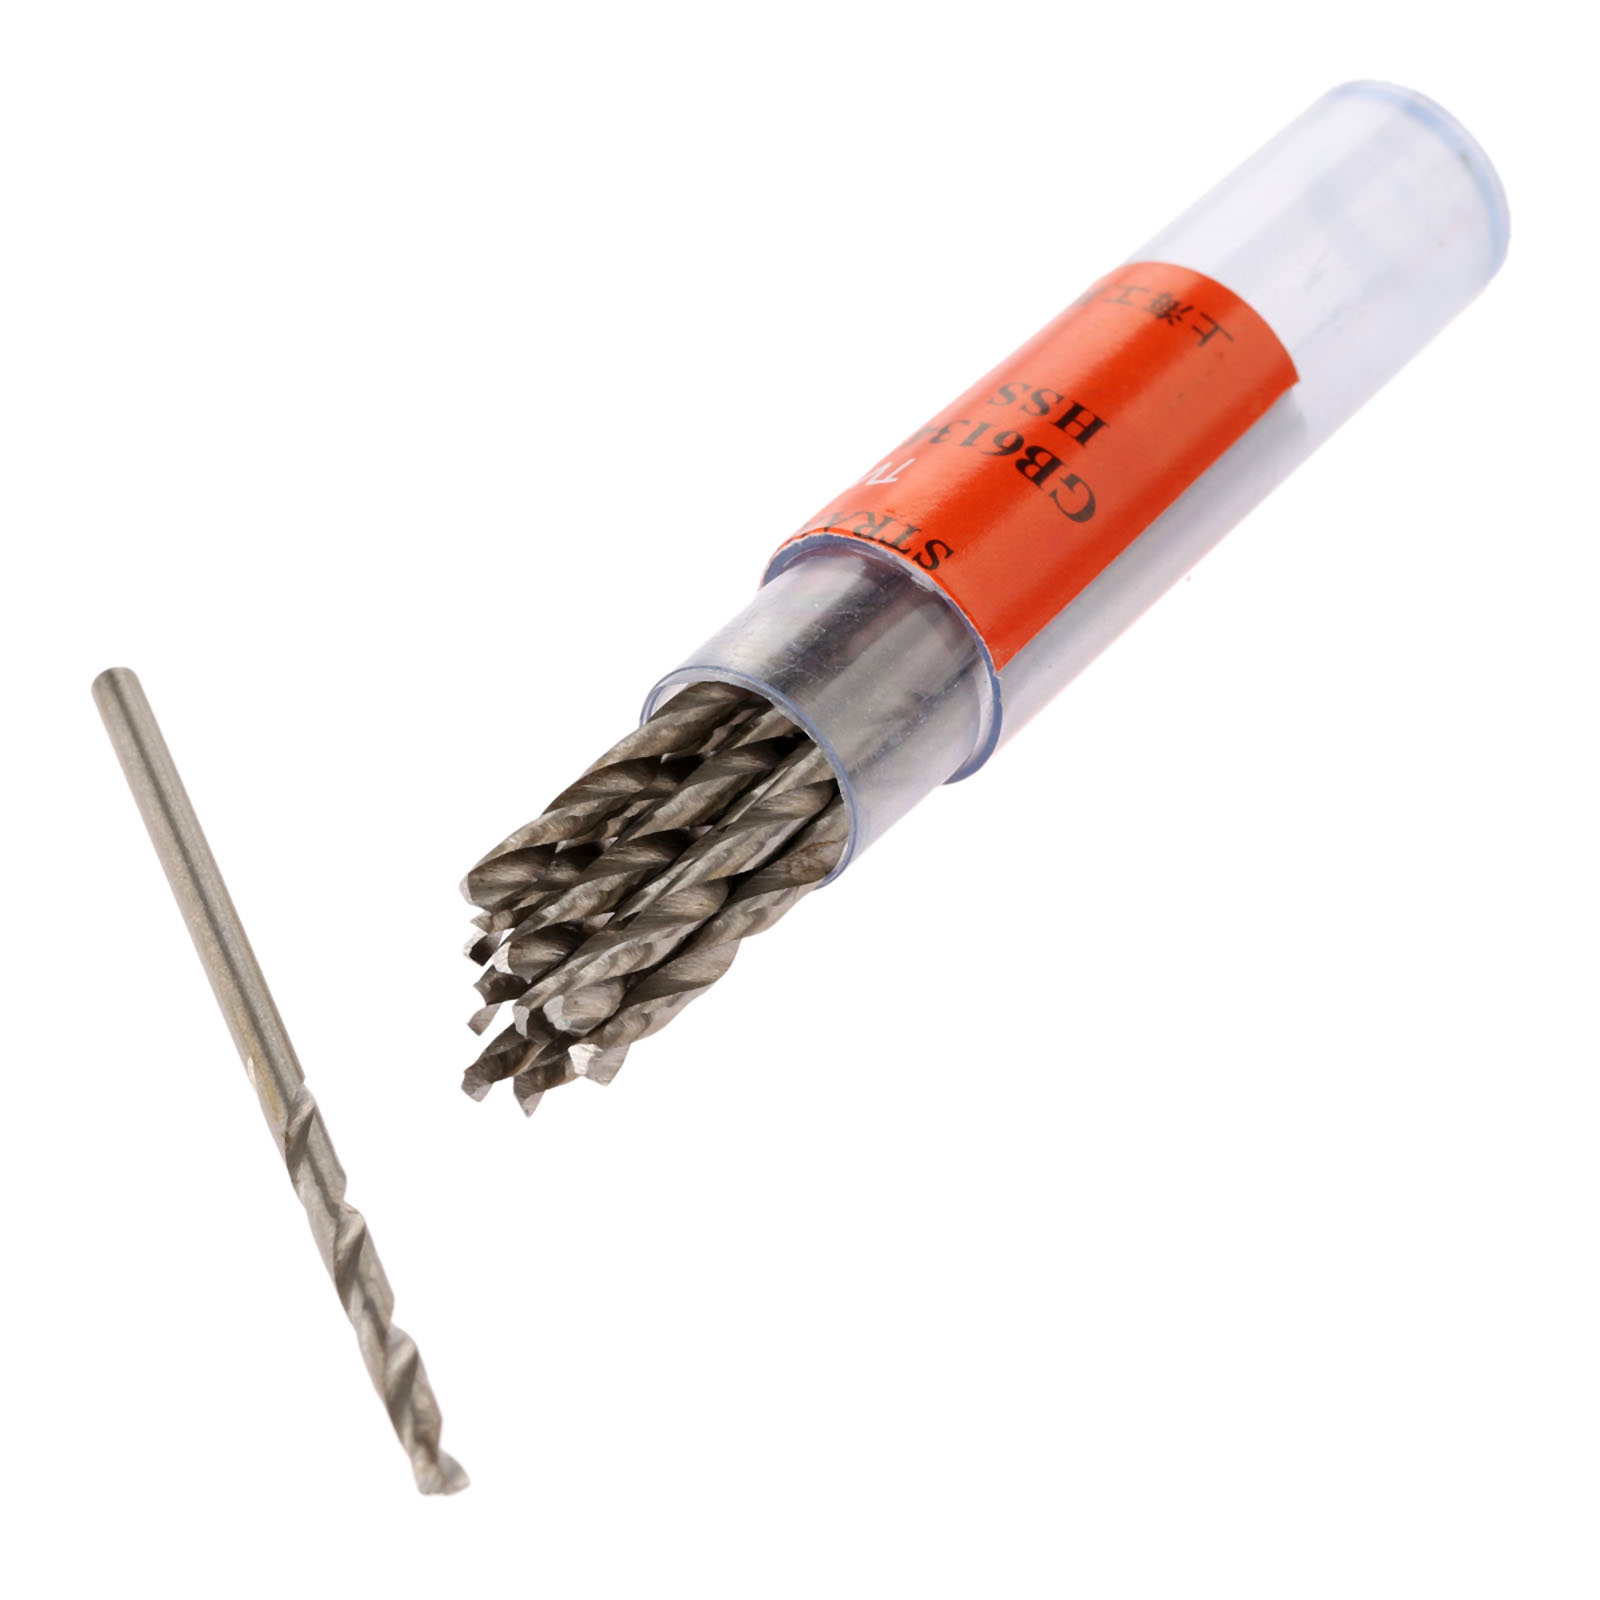 10Pcs Twist Drill Bits HSS Drill Bit 1.5/1.6/1.7/1.8/1.9mm Micro Straight Shank Wood Drilling Electric Drills Woodworking Tools free shipping of 1pc 19 223mm cnc grinded hss m2 made taper shank twist drill bits for various kinds of material drilling work